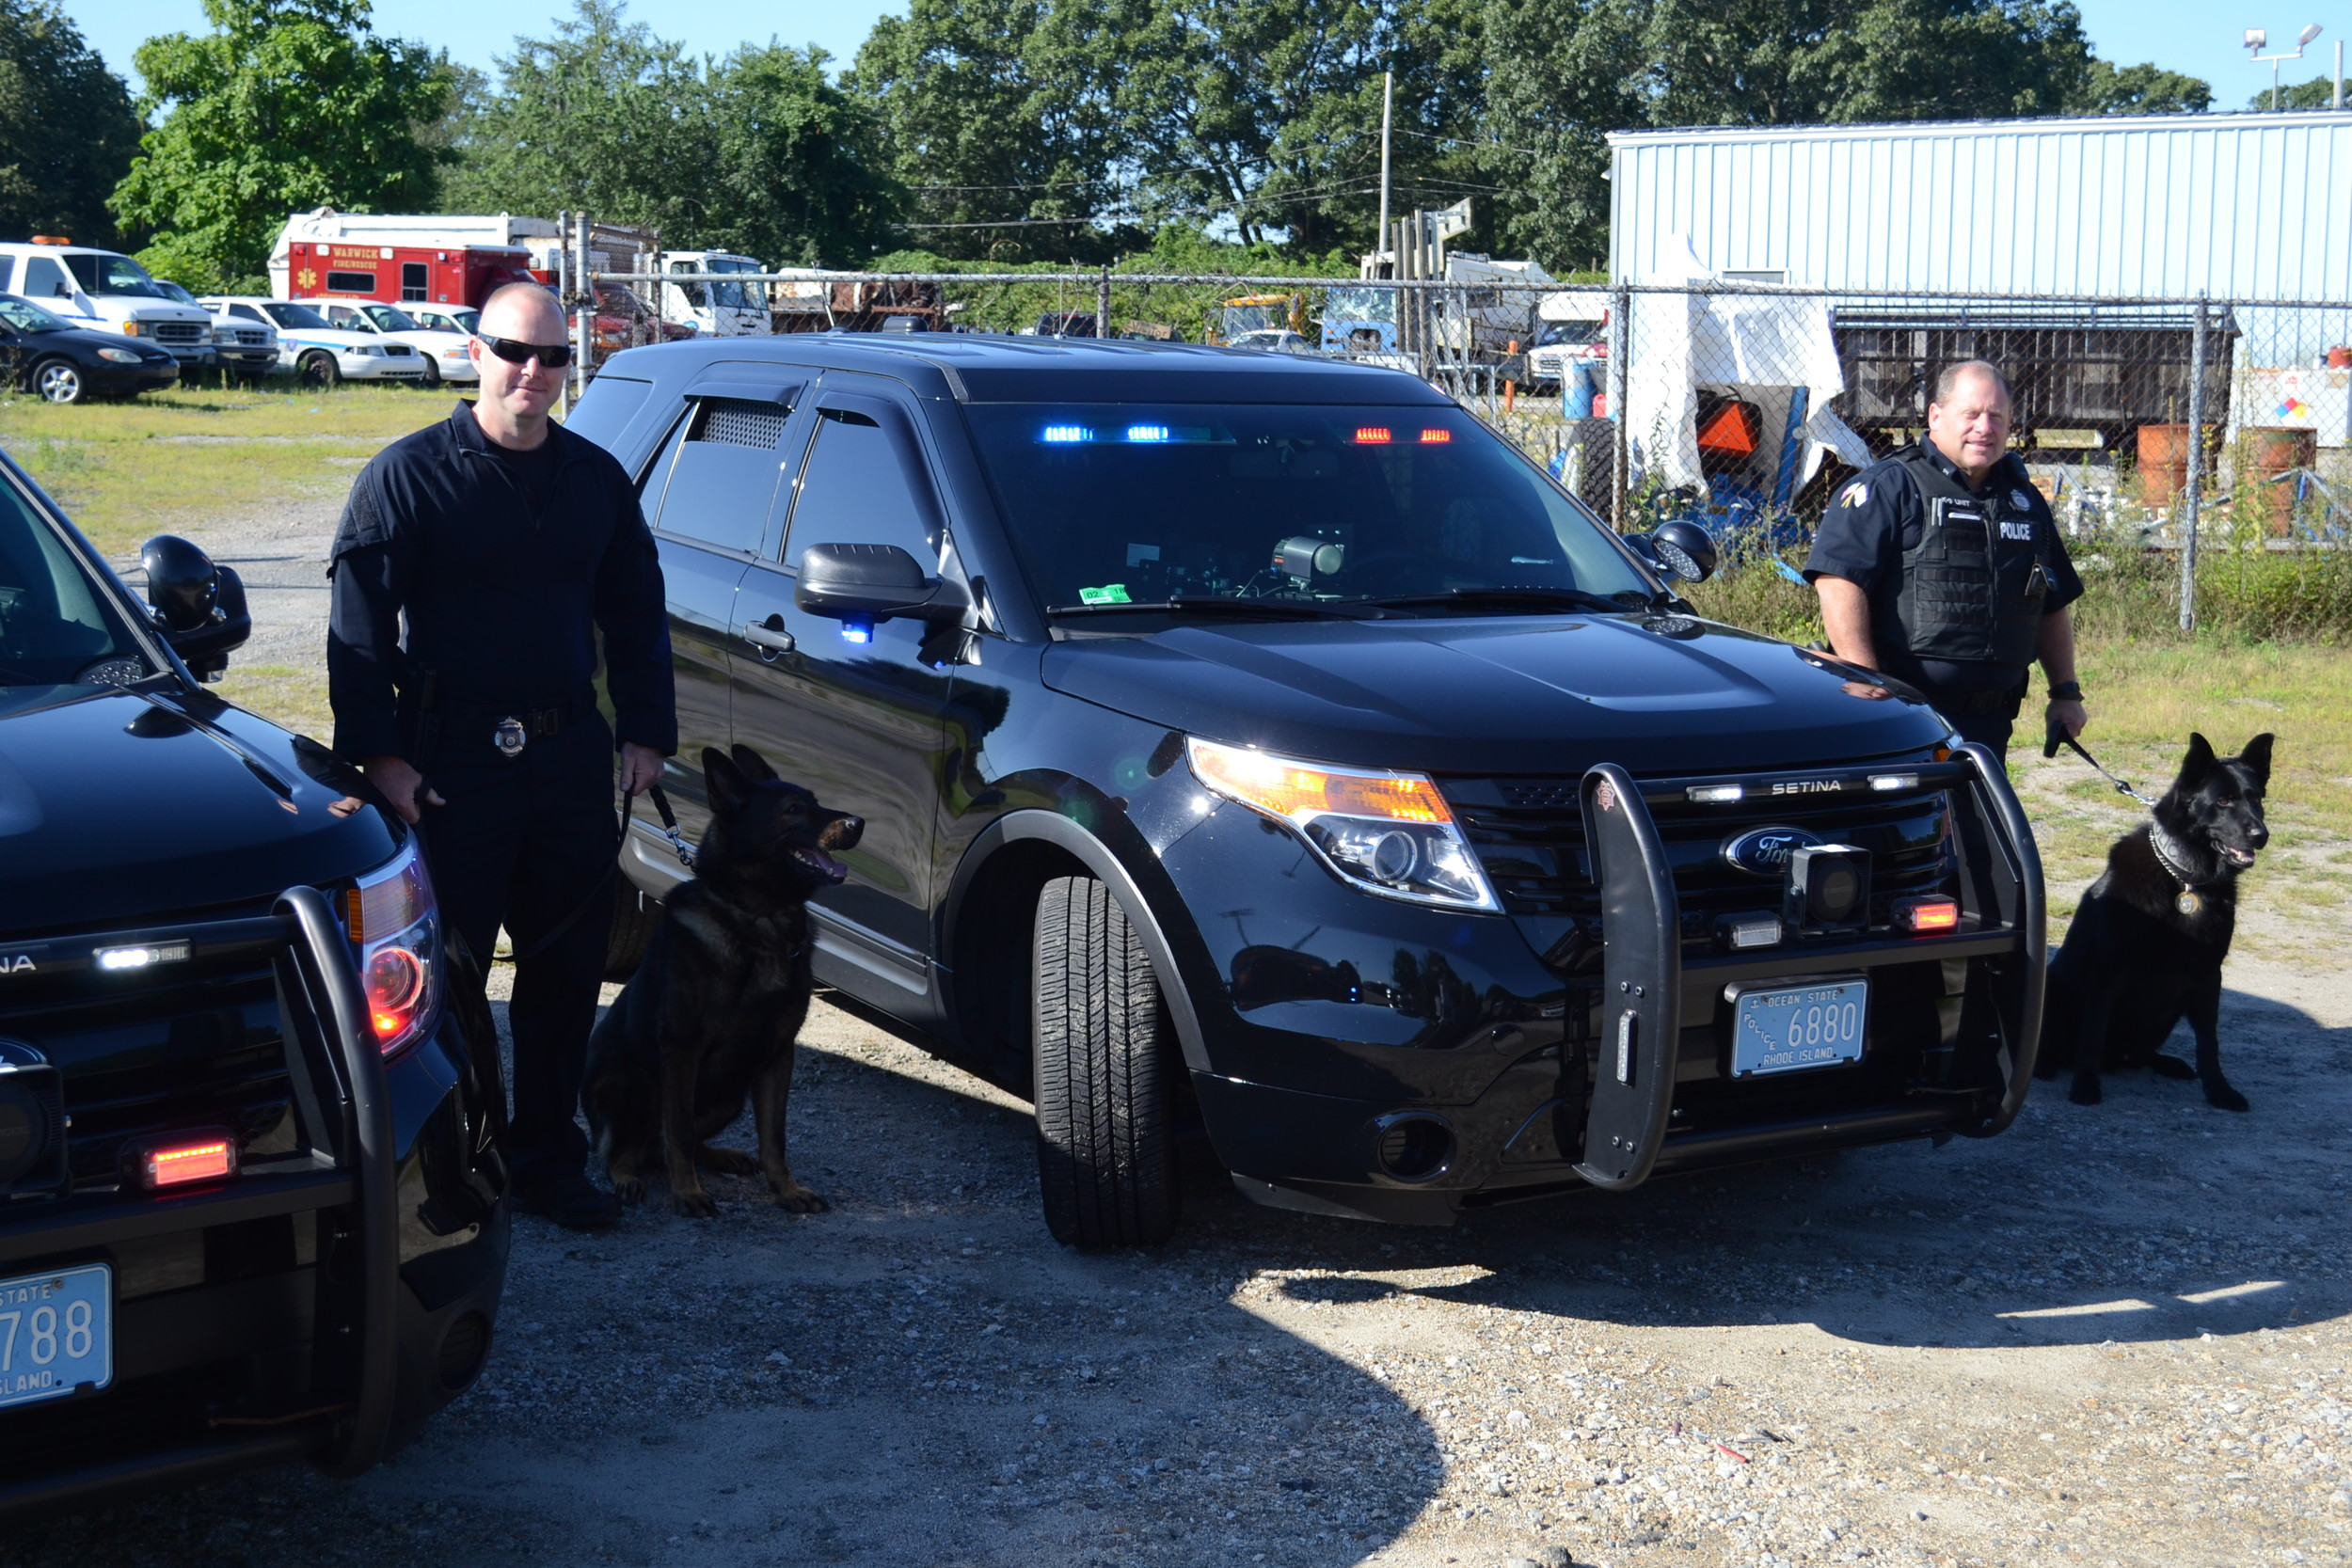 K-9 officers Aaron Steere and Paul Wells with their K-9 partners, Viking and Fox.